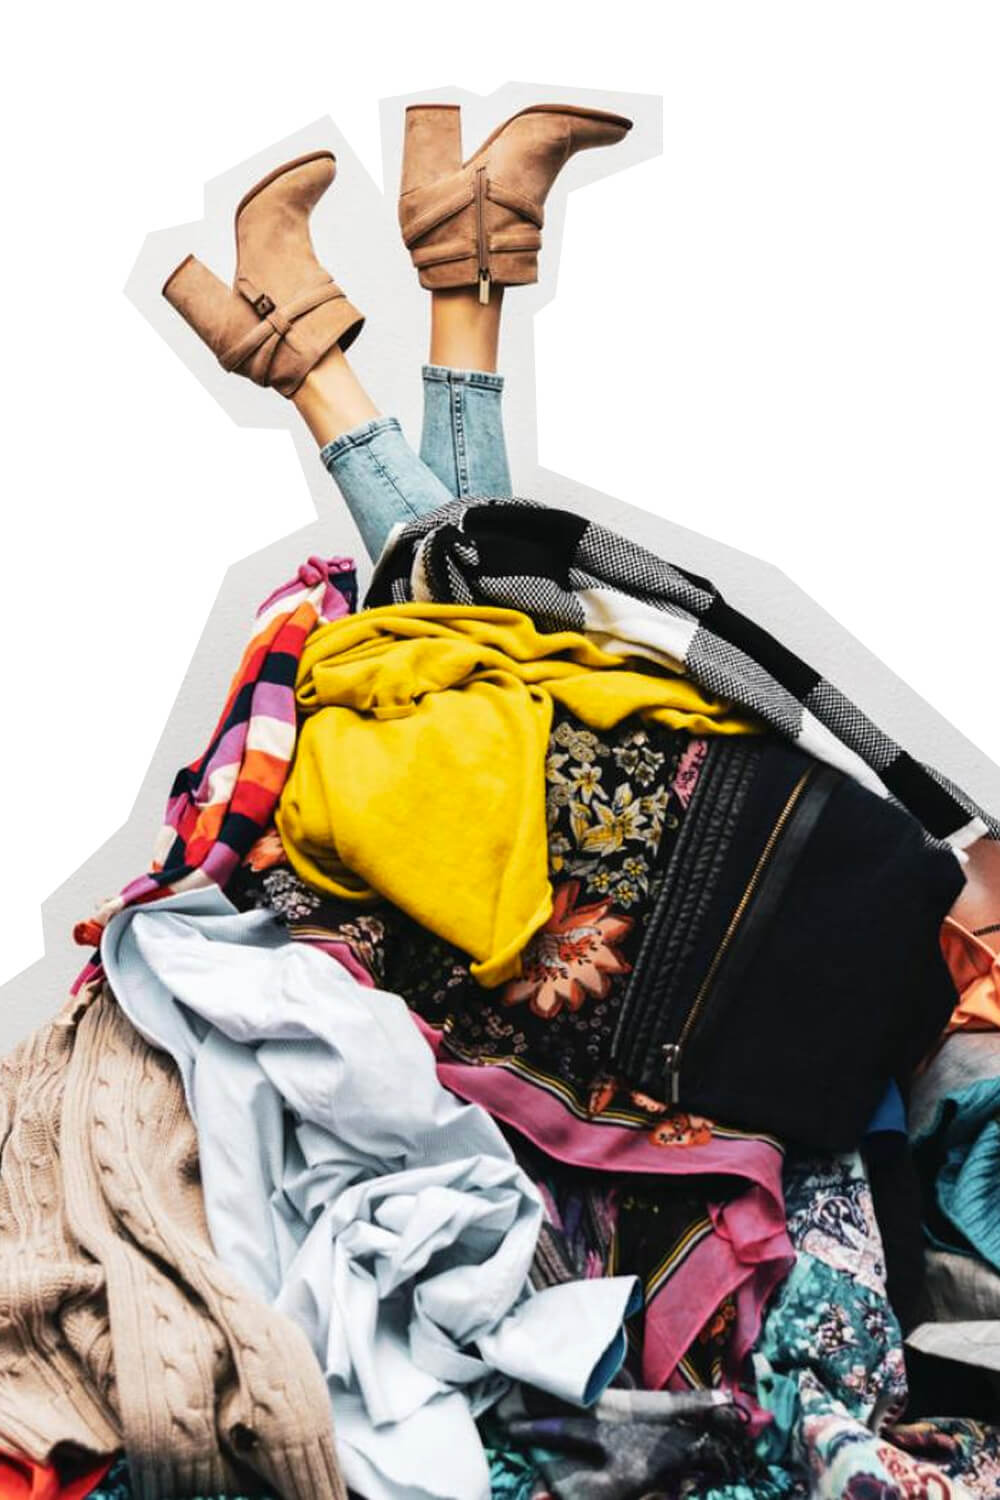 Re-learn in sustainable fashion